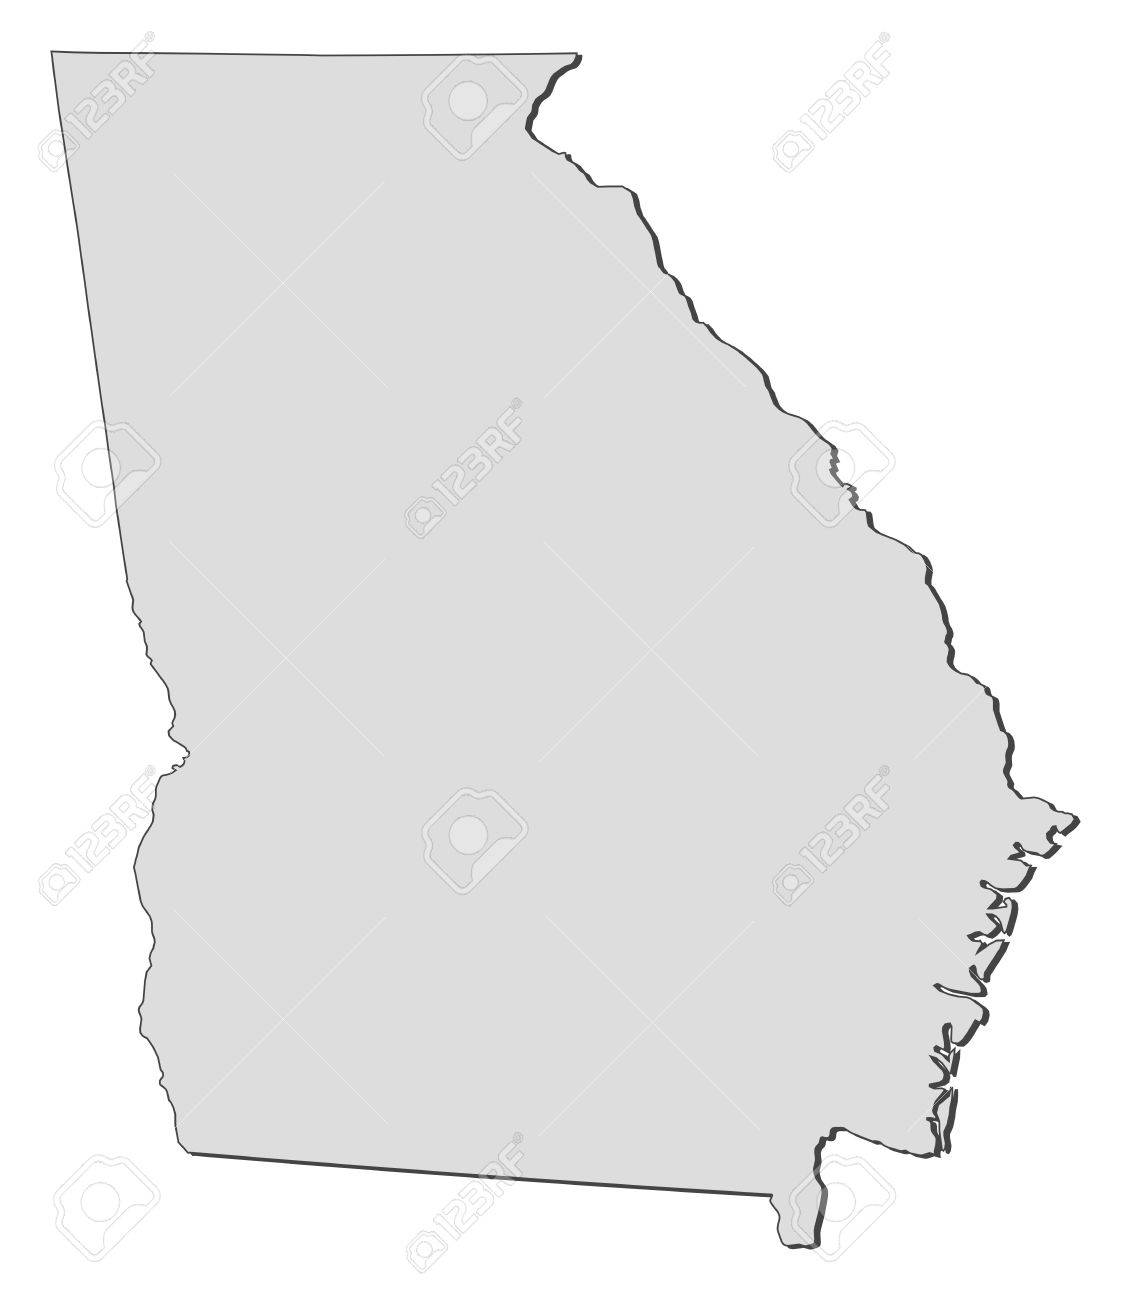 Map of Georgia, a state of United States. Stock Vector - 14368623